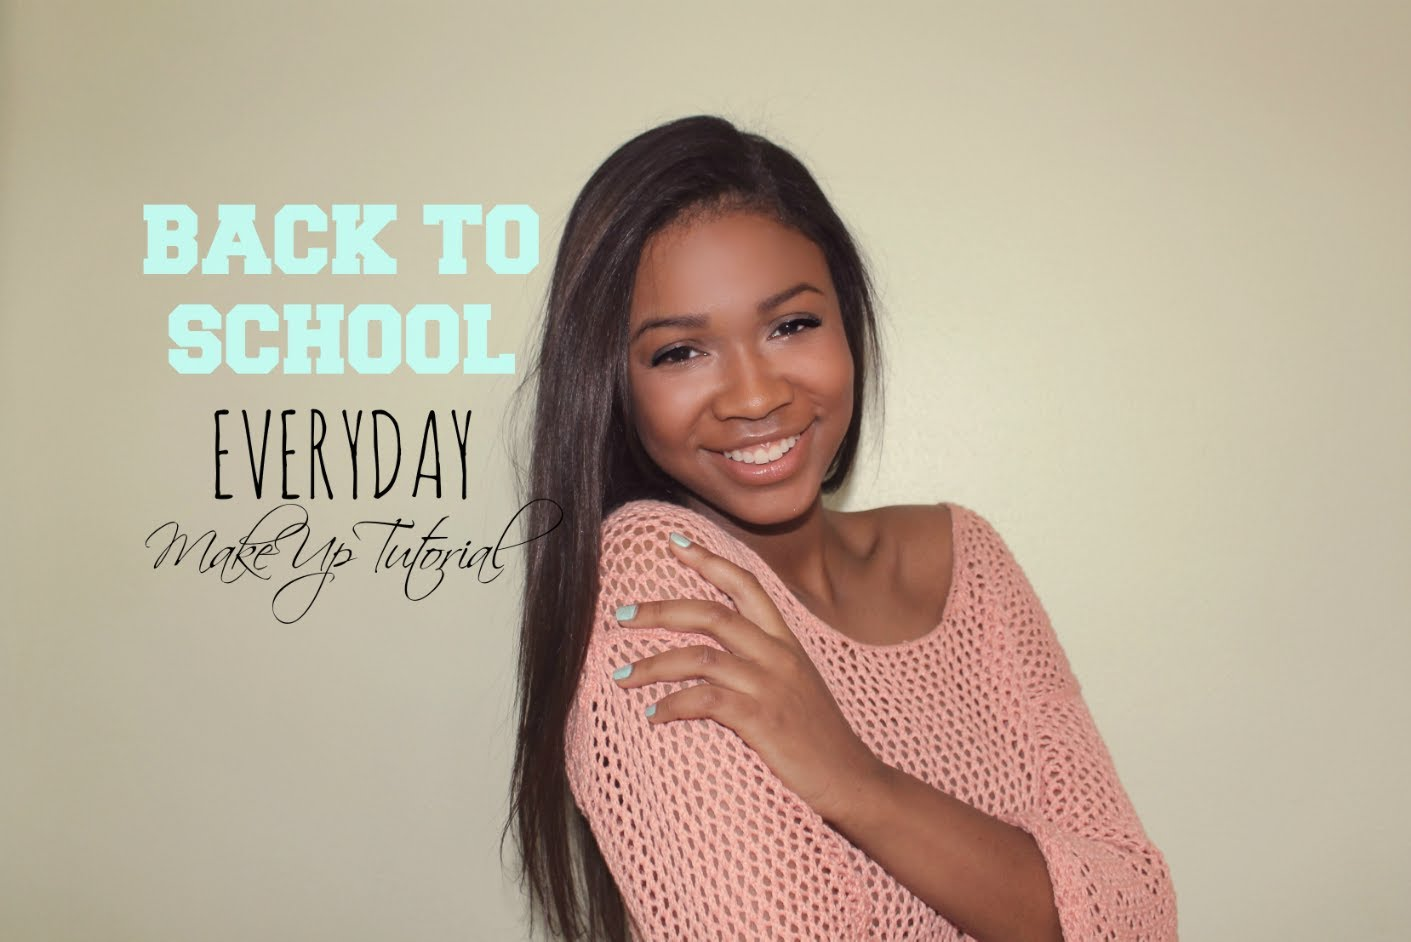 Download video back to school simple everyday makeup tutorial download video back to school simple everyday makeup tutorial baditri Gallery